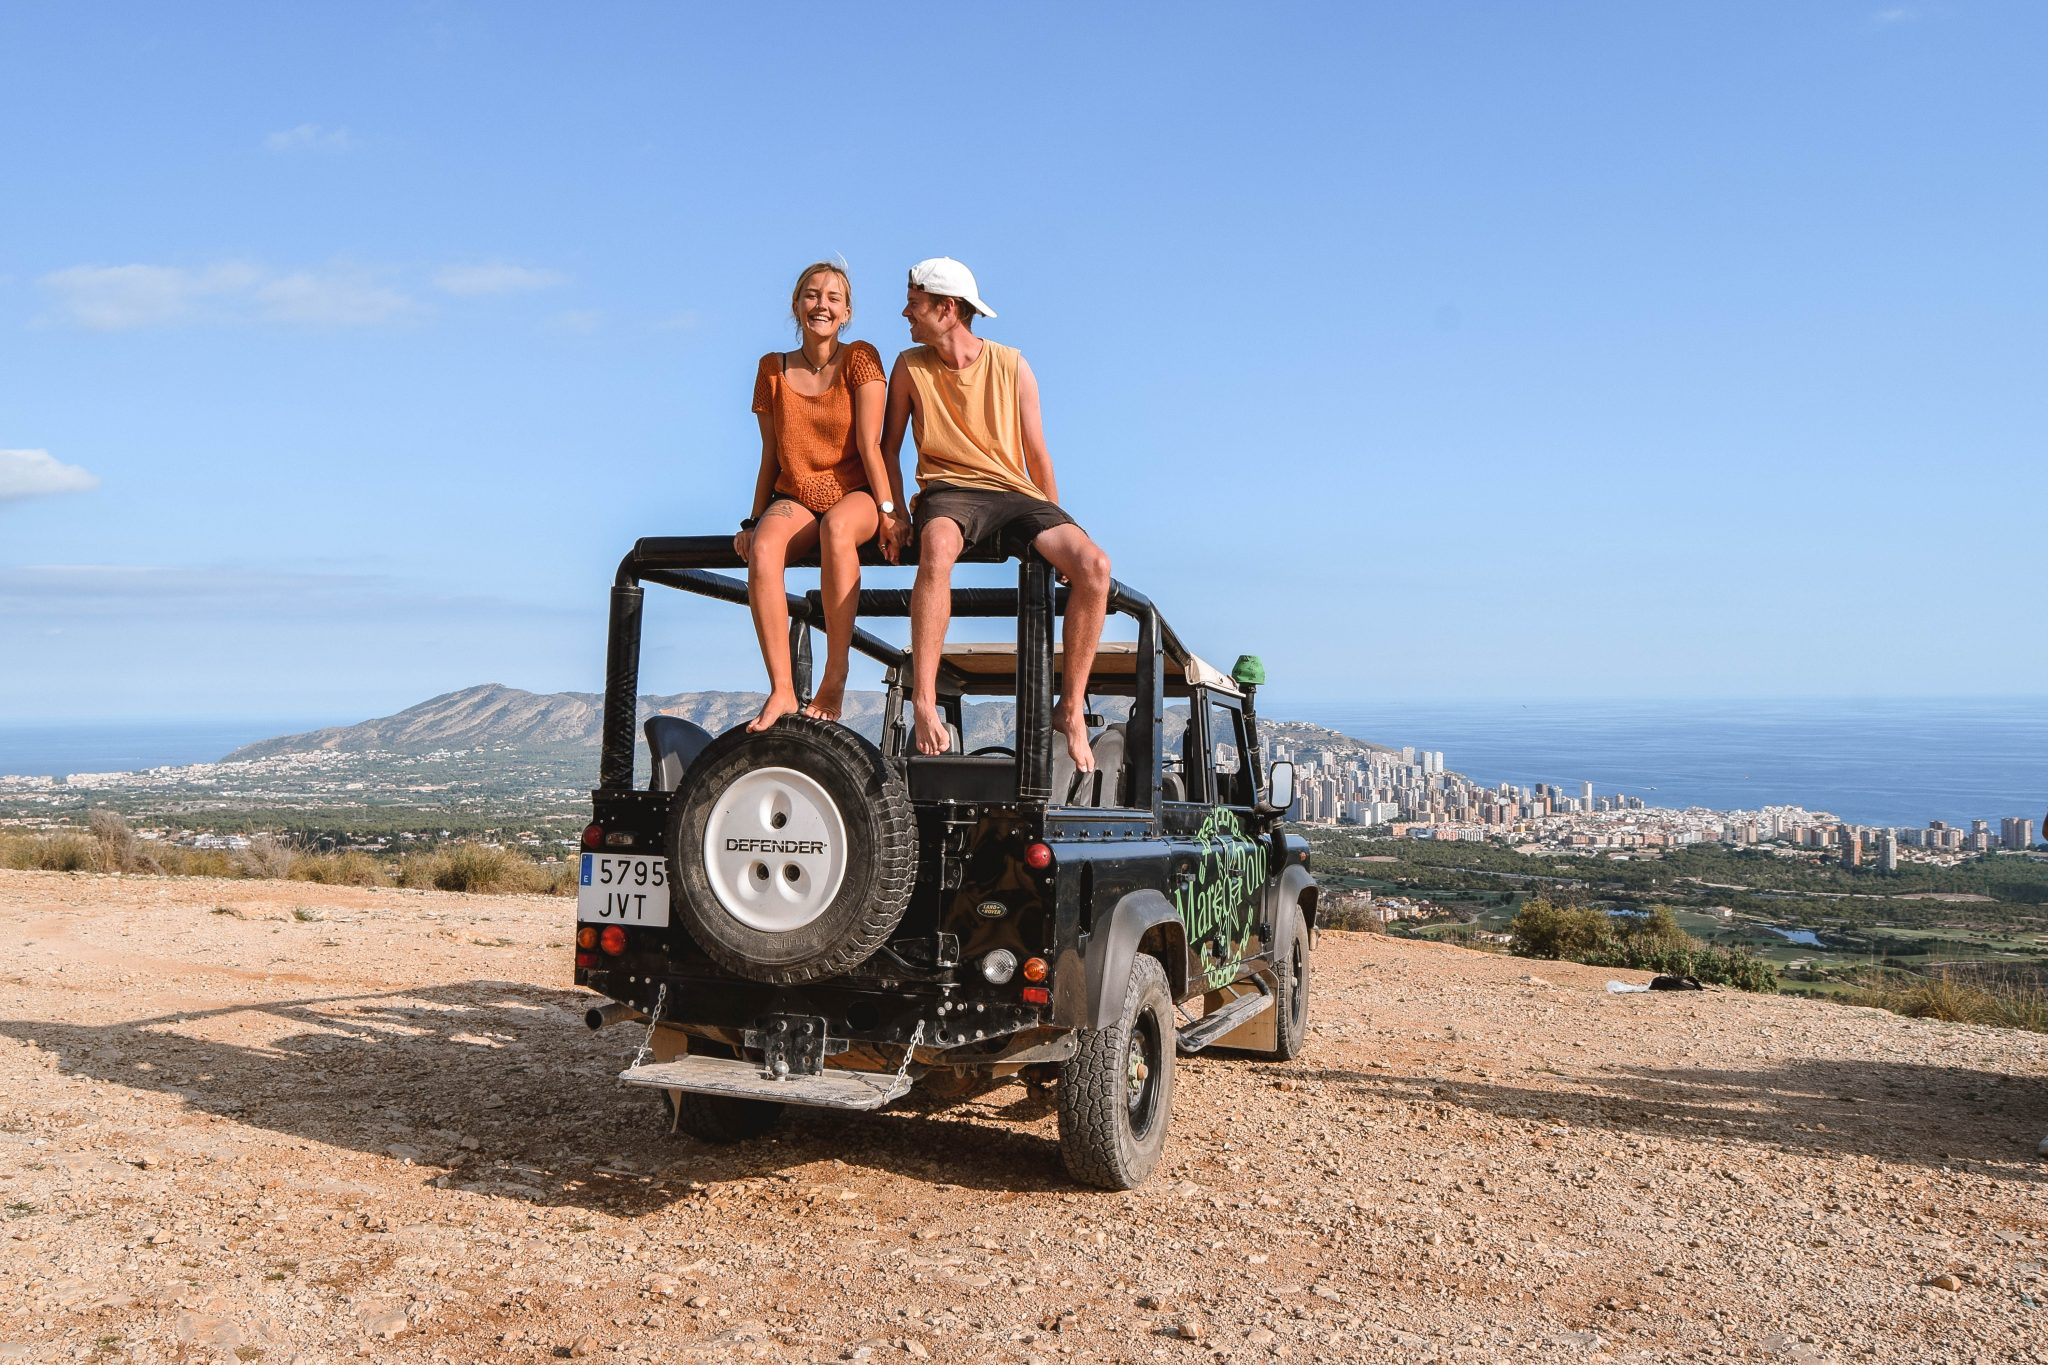 Wanderers & Warriors - Charlie & Lauren UK Travel Couple - Things To Do In Benidorm Jeep Safari Tour